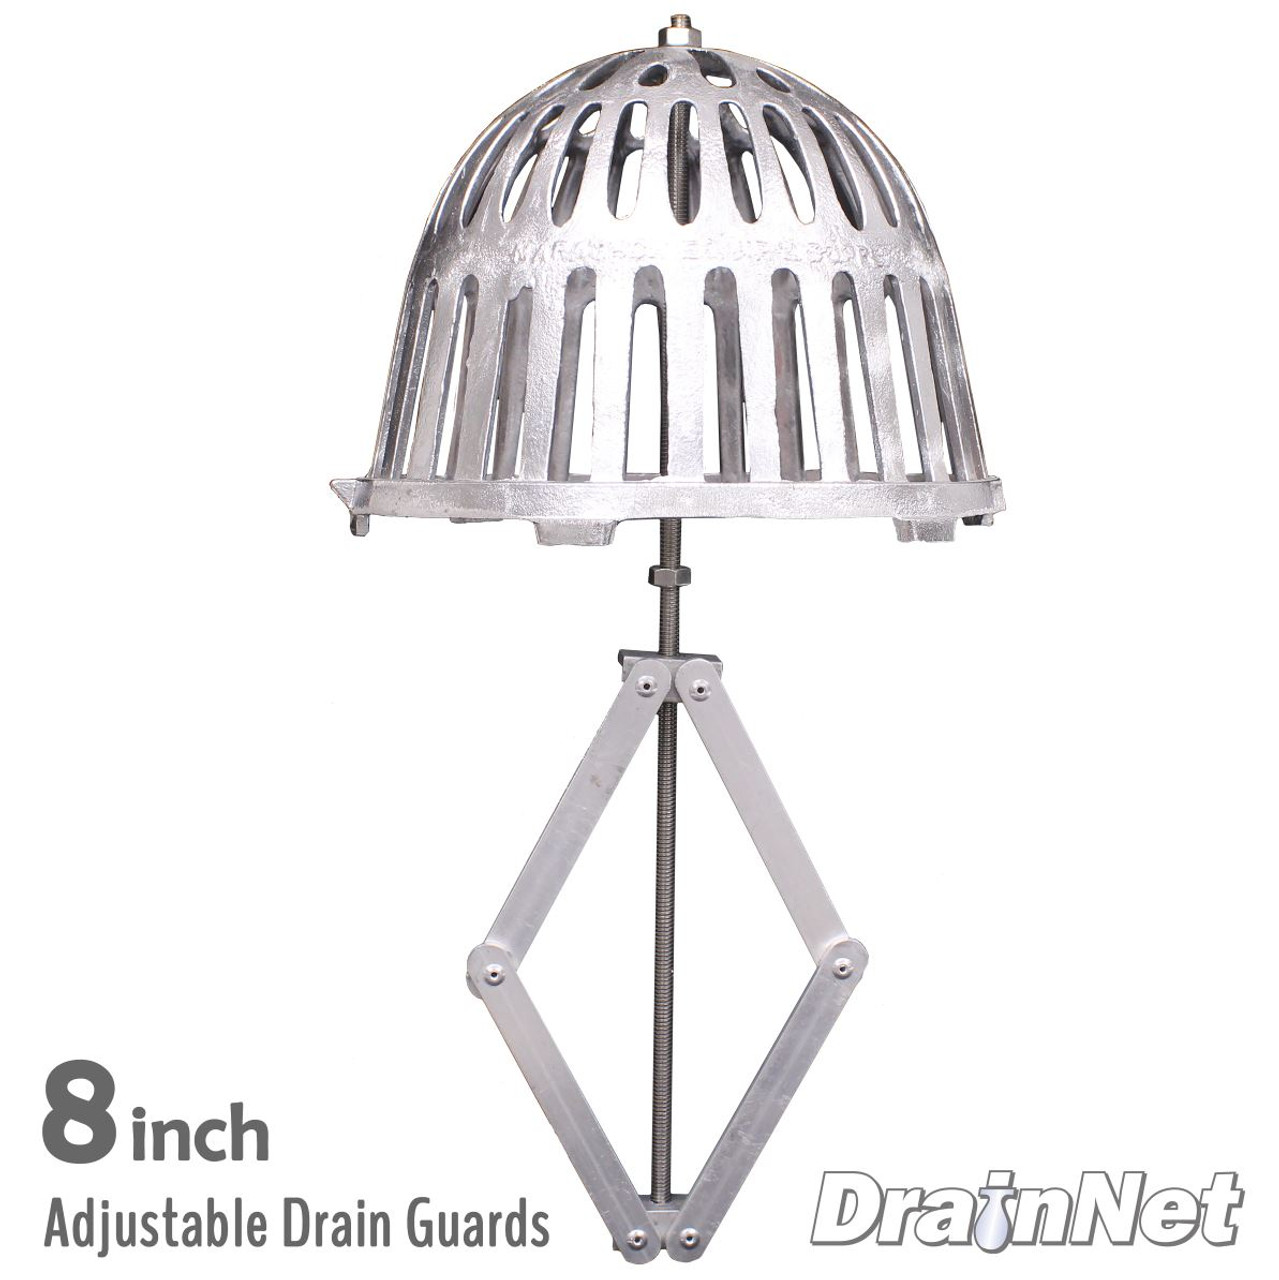 Adjustable Drain Guards for Roof Drains - 8 inch